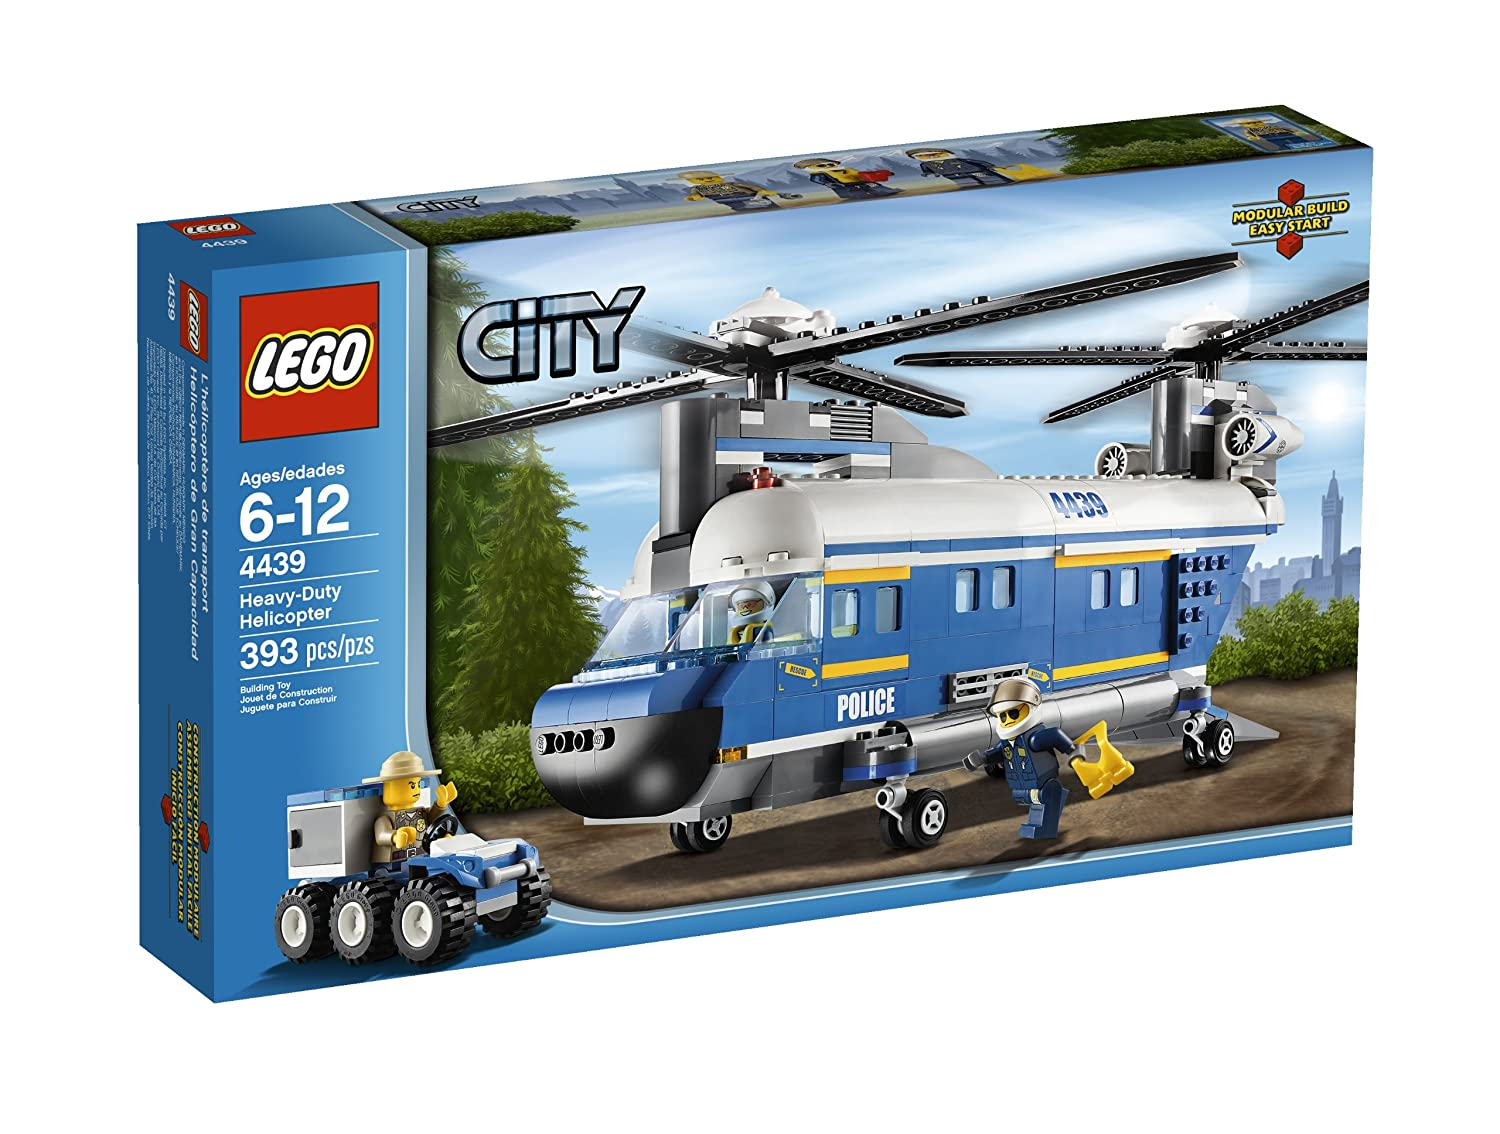 Top 9 Best LEGO Helicopter Sets Reviews in 2020 5